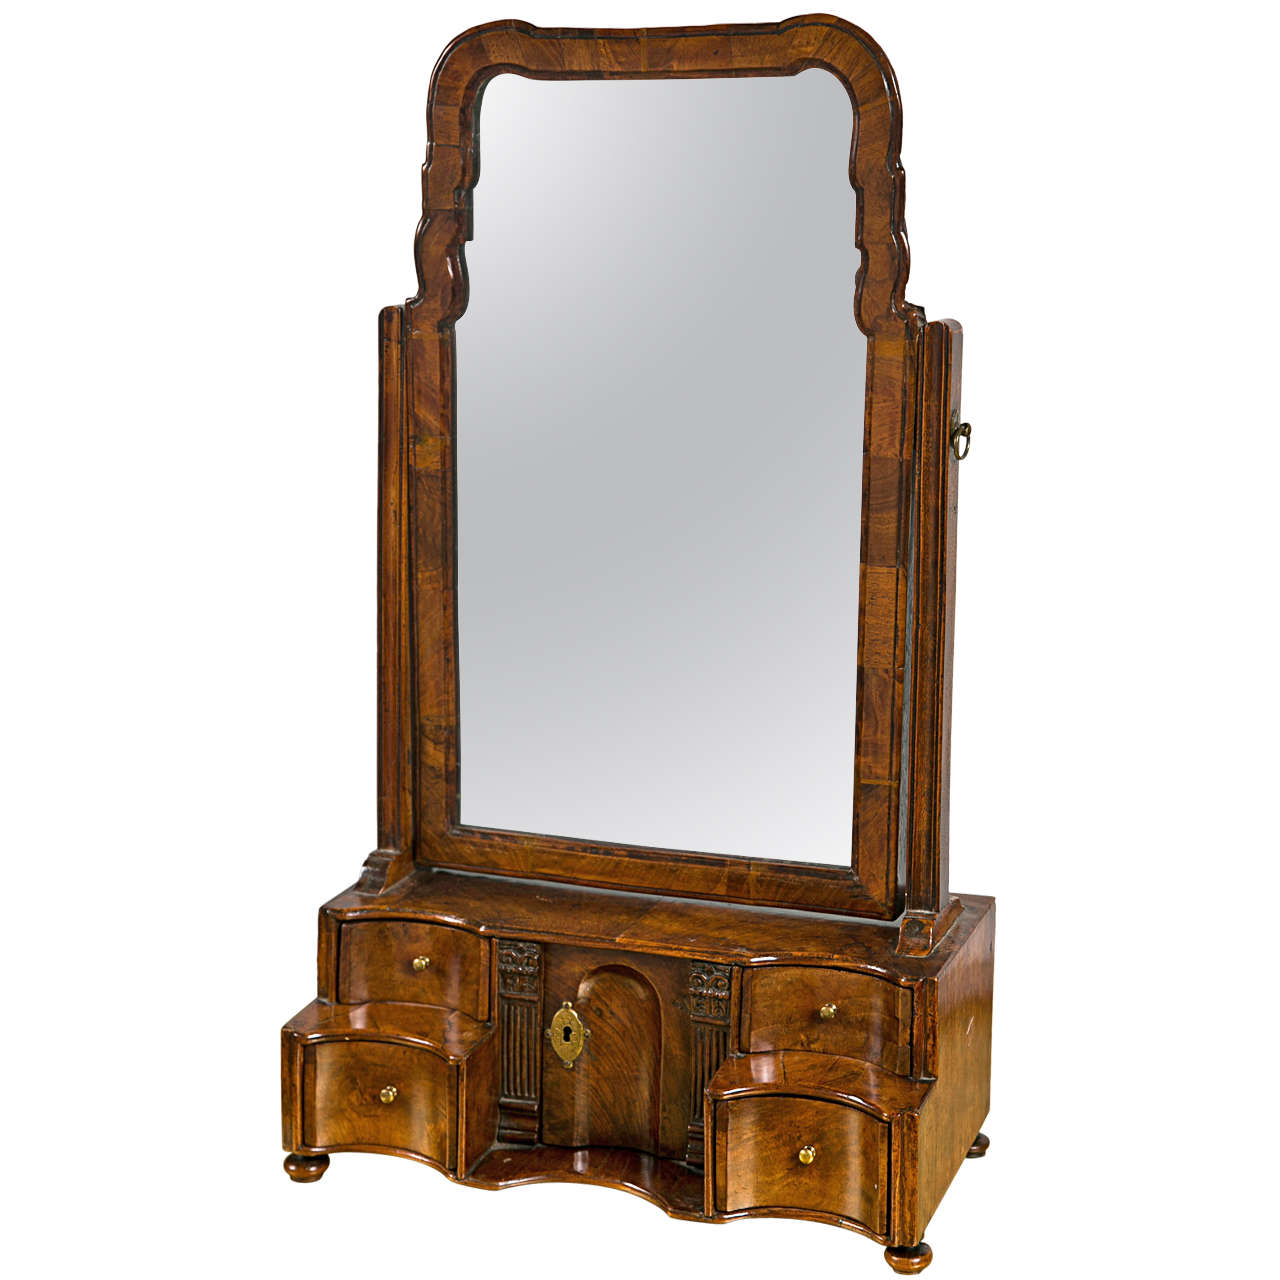 Antique dressing table with mirror - 19th Century English Georgian Style Dressing Table Mirror 1